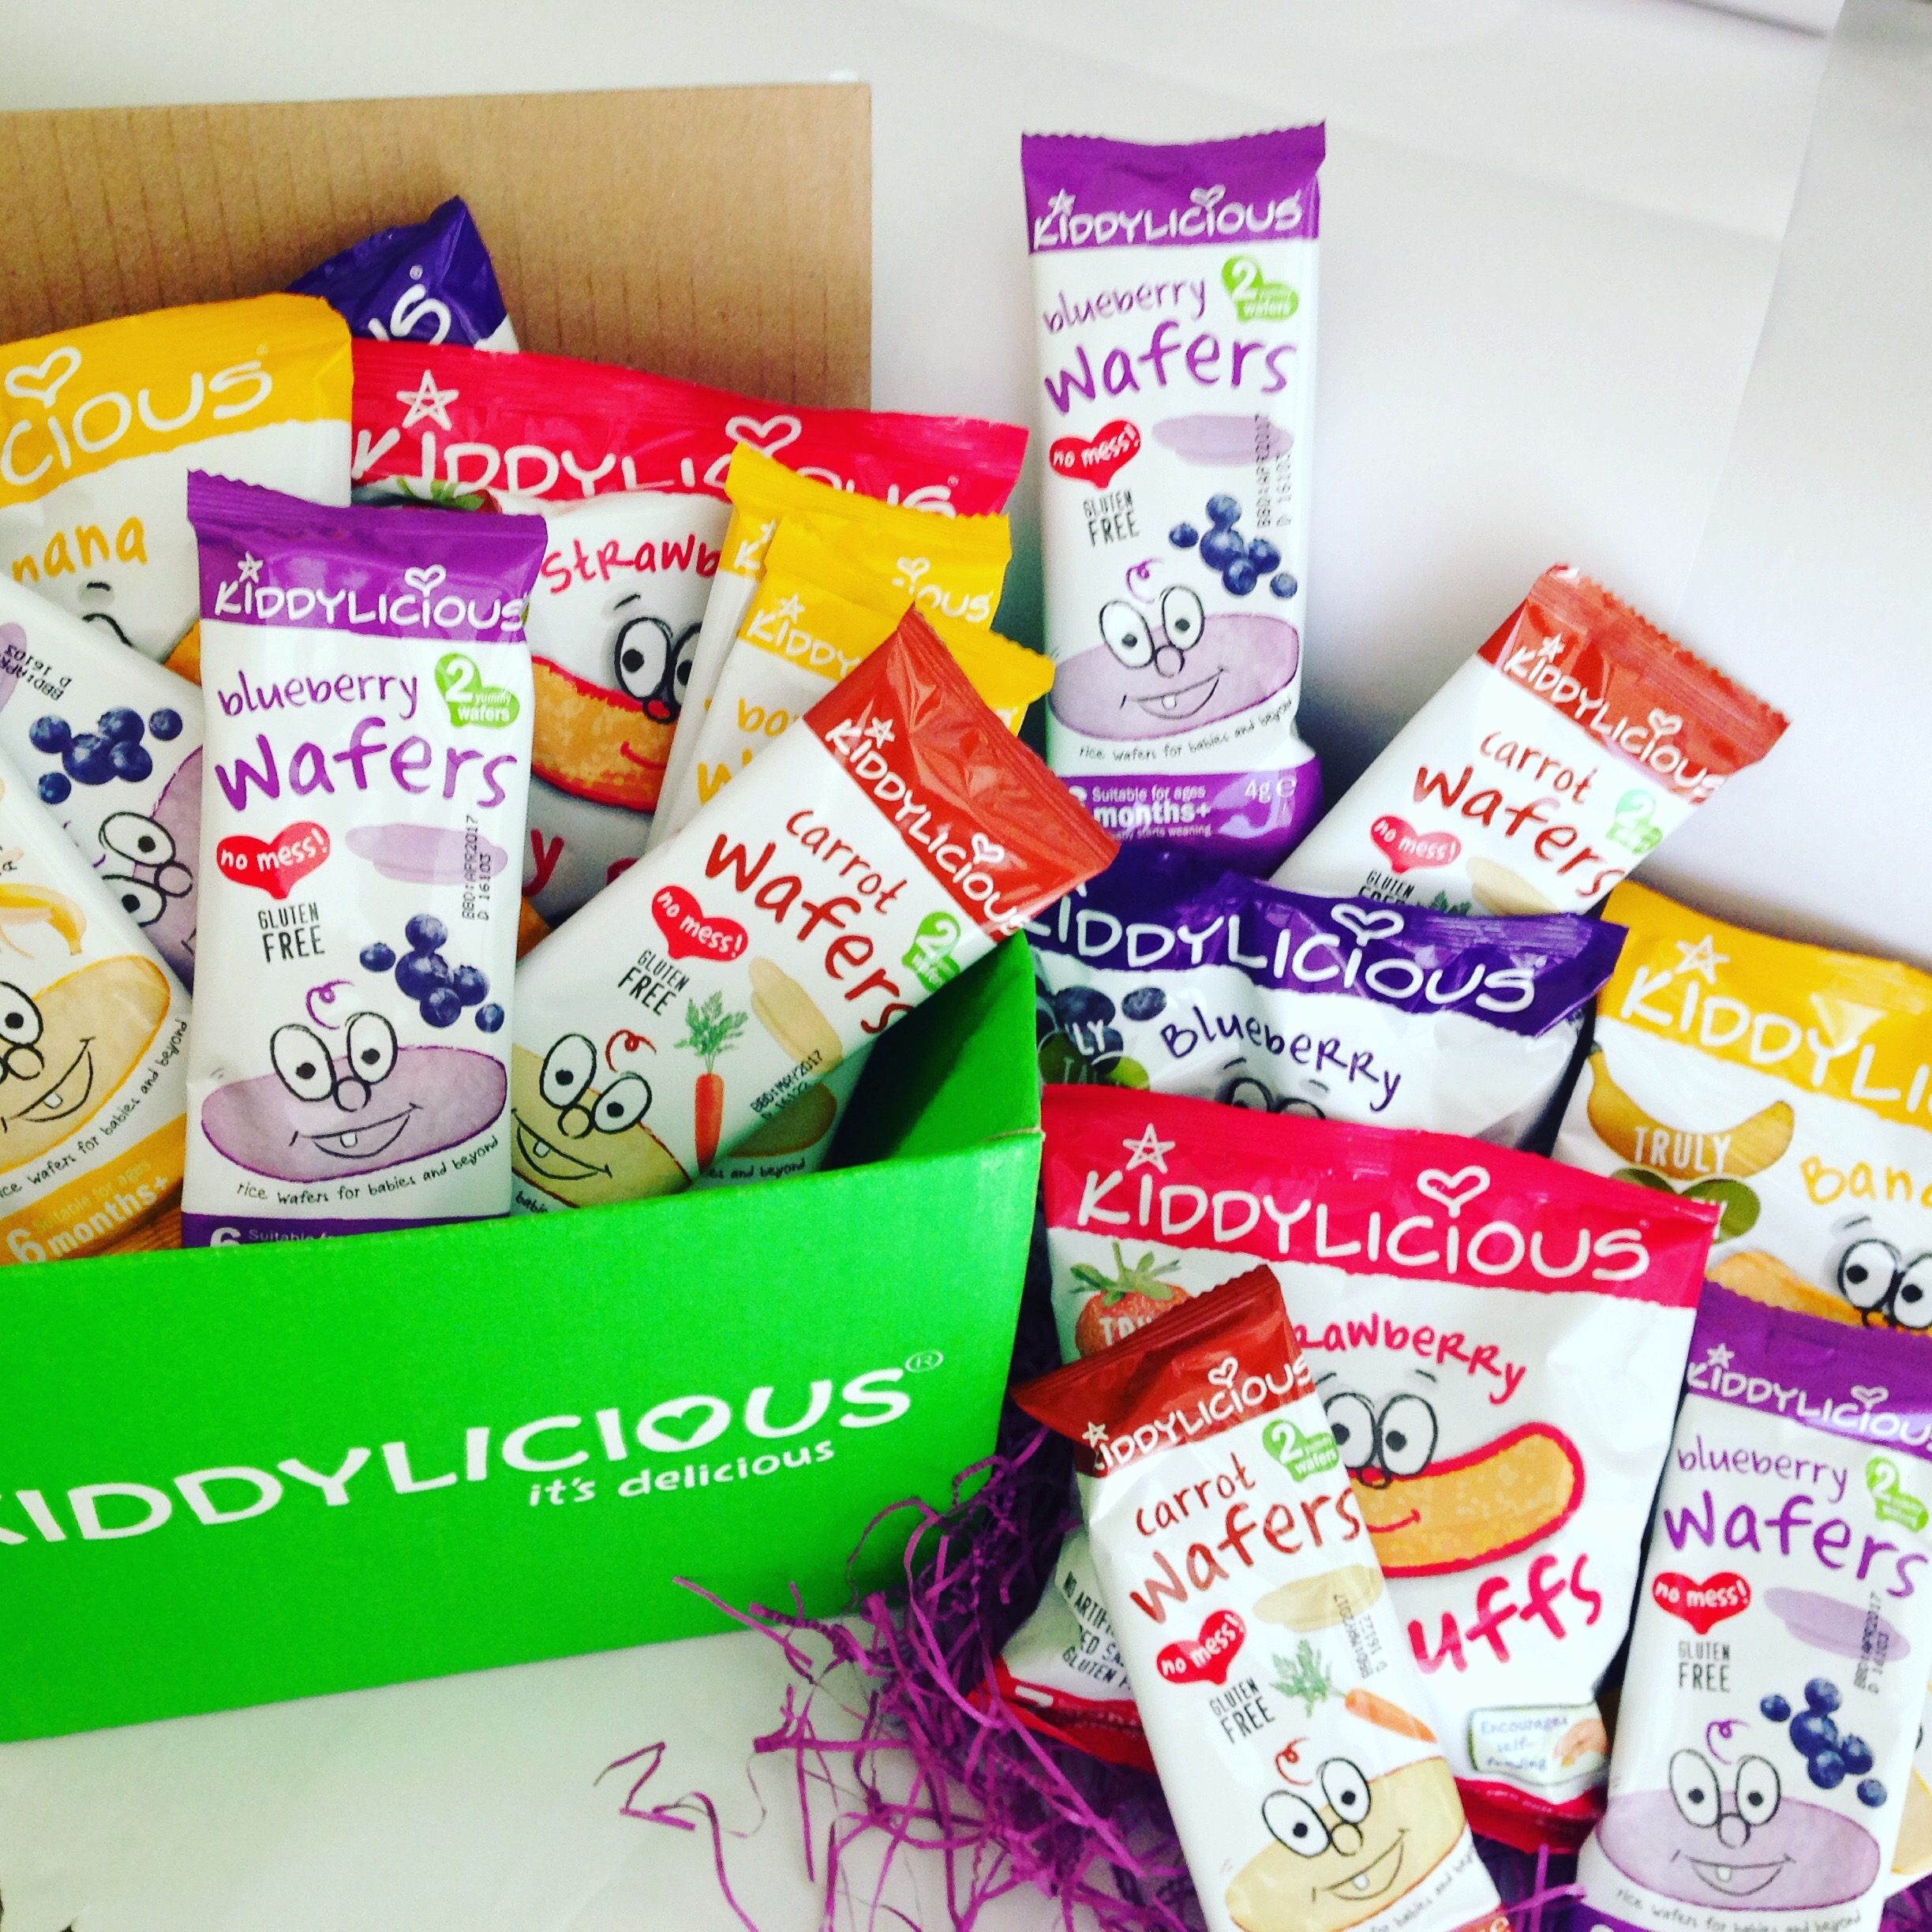 Kiddylicious snacks